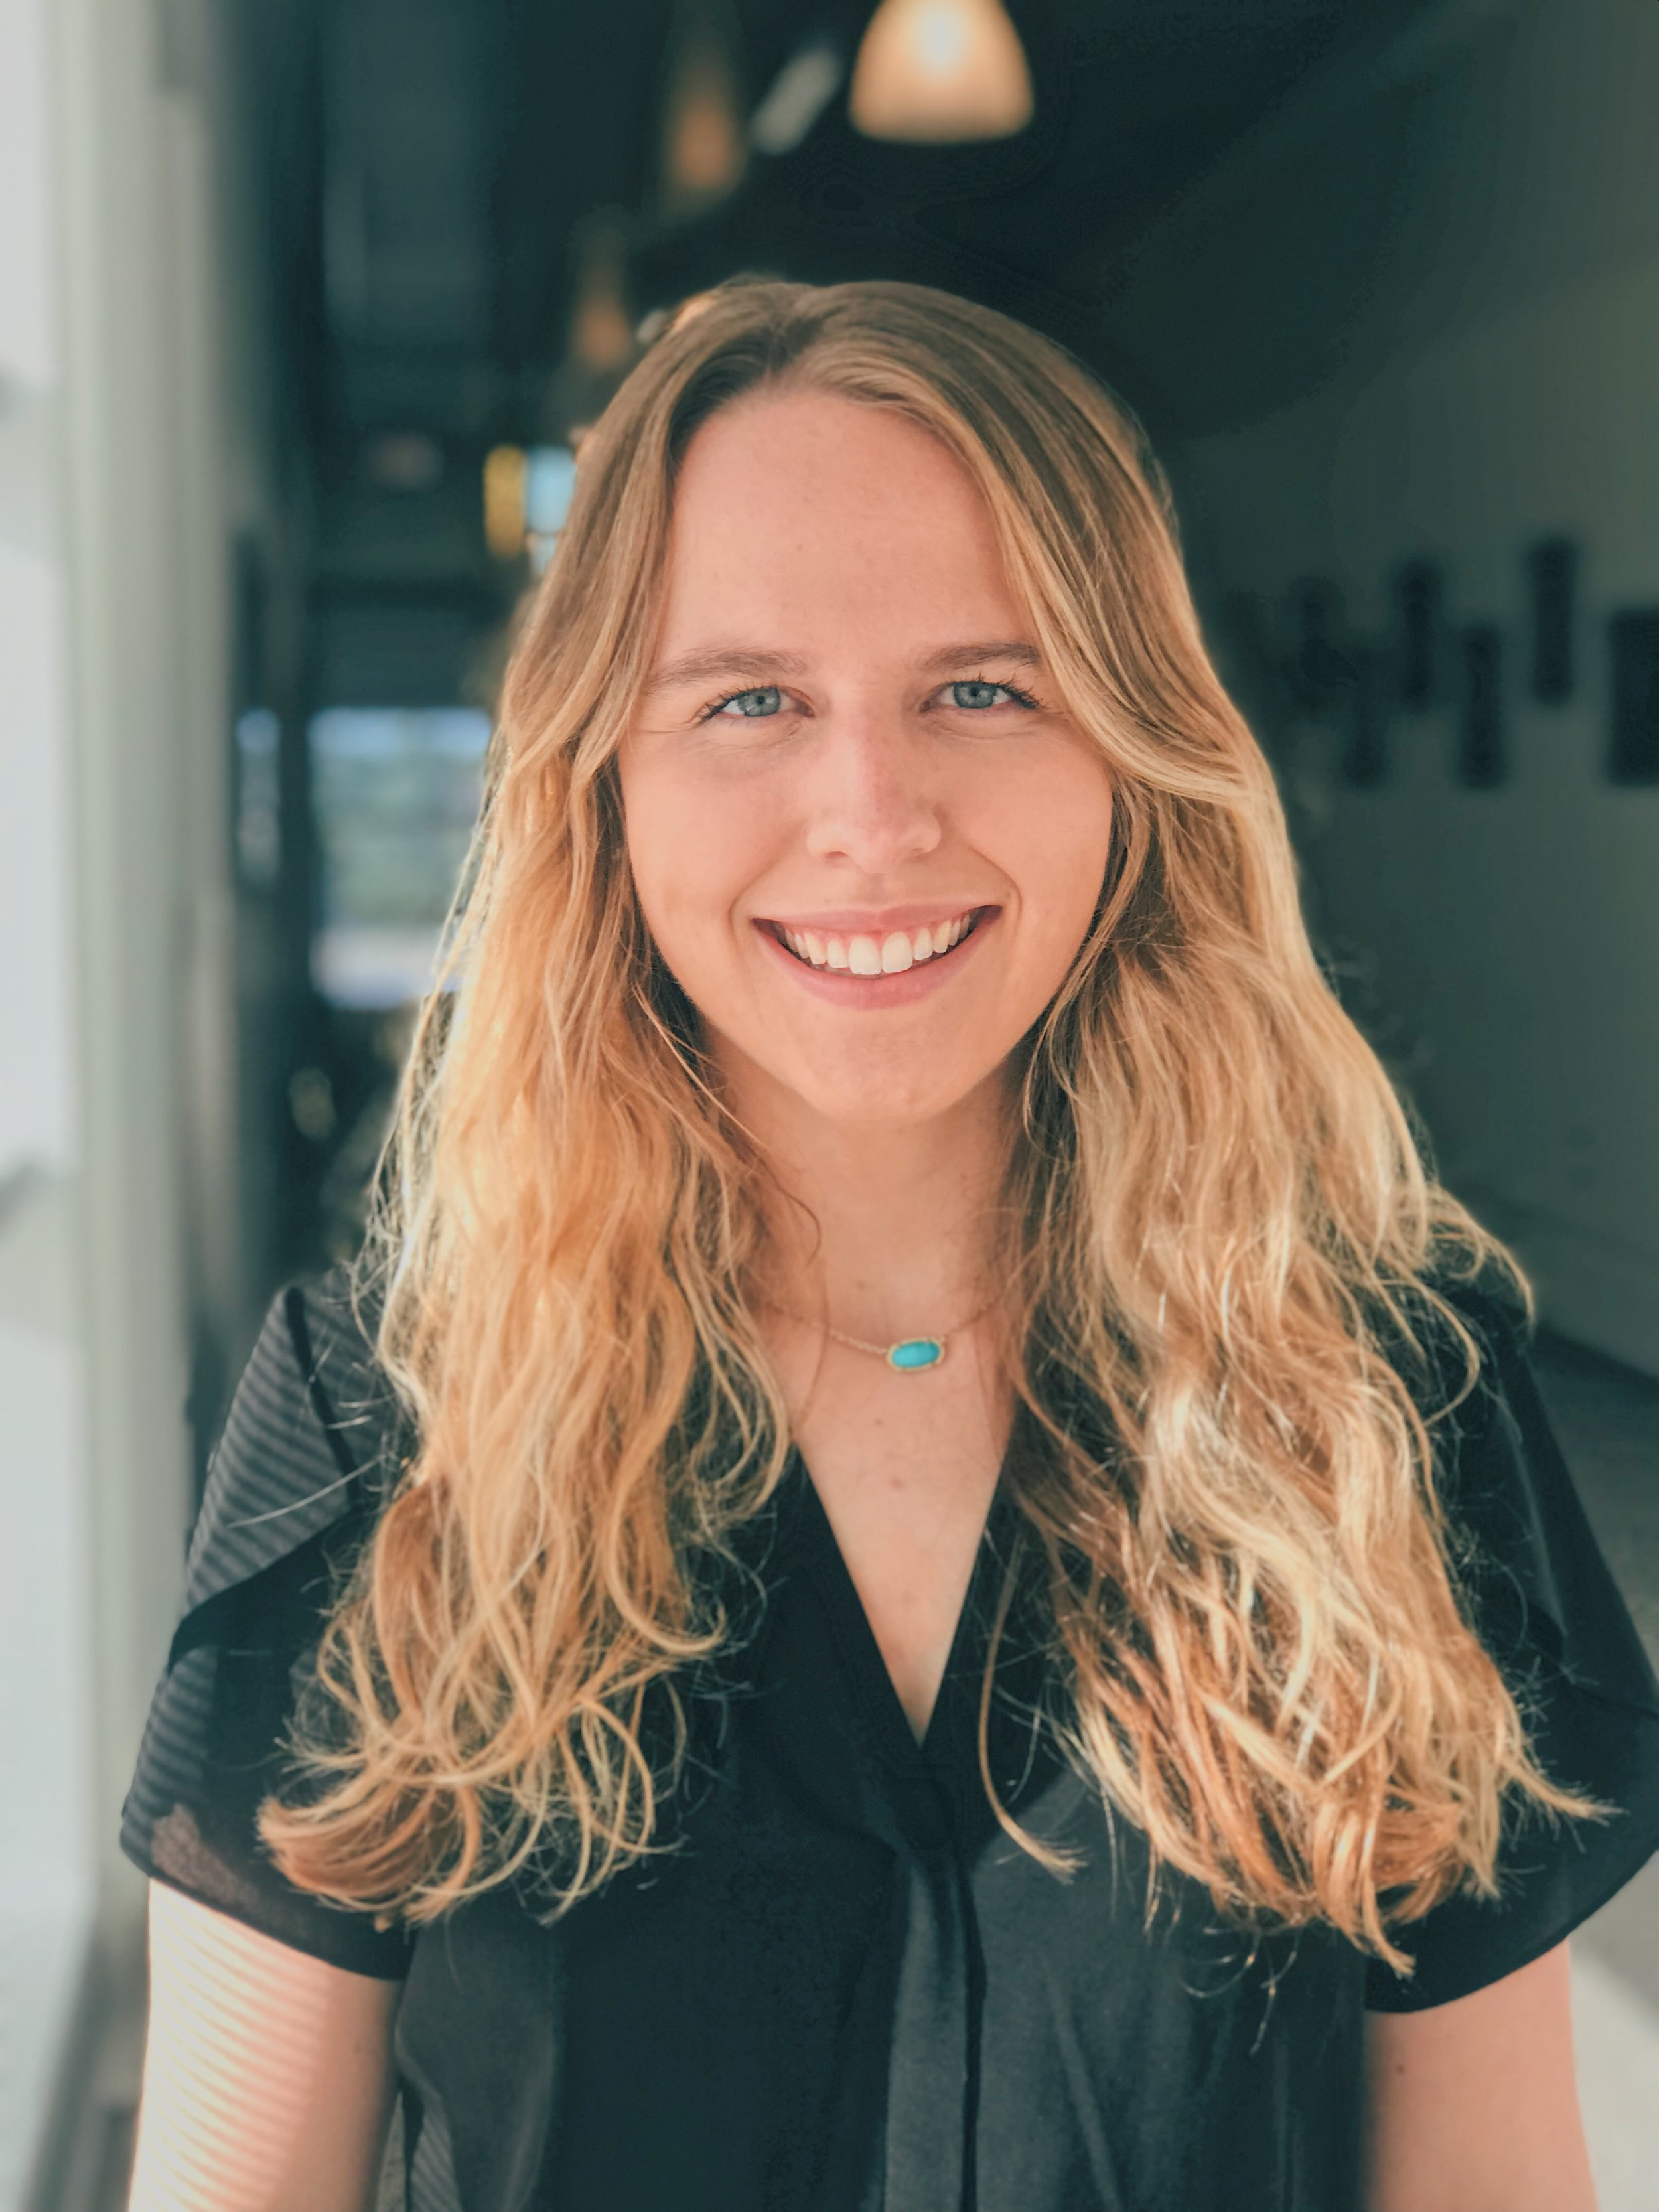 CONNECT WITH BRIDGIT ON    LINKEDIN